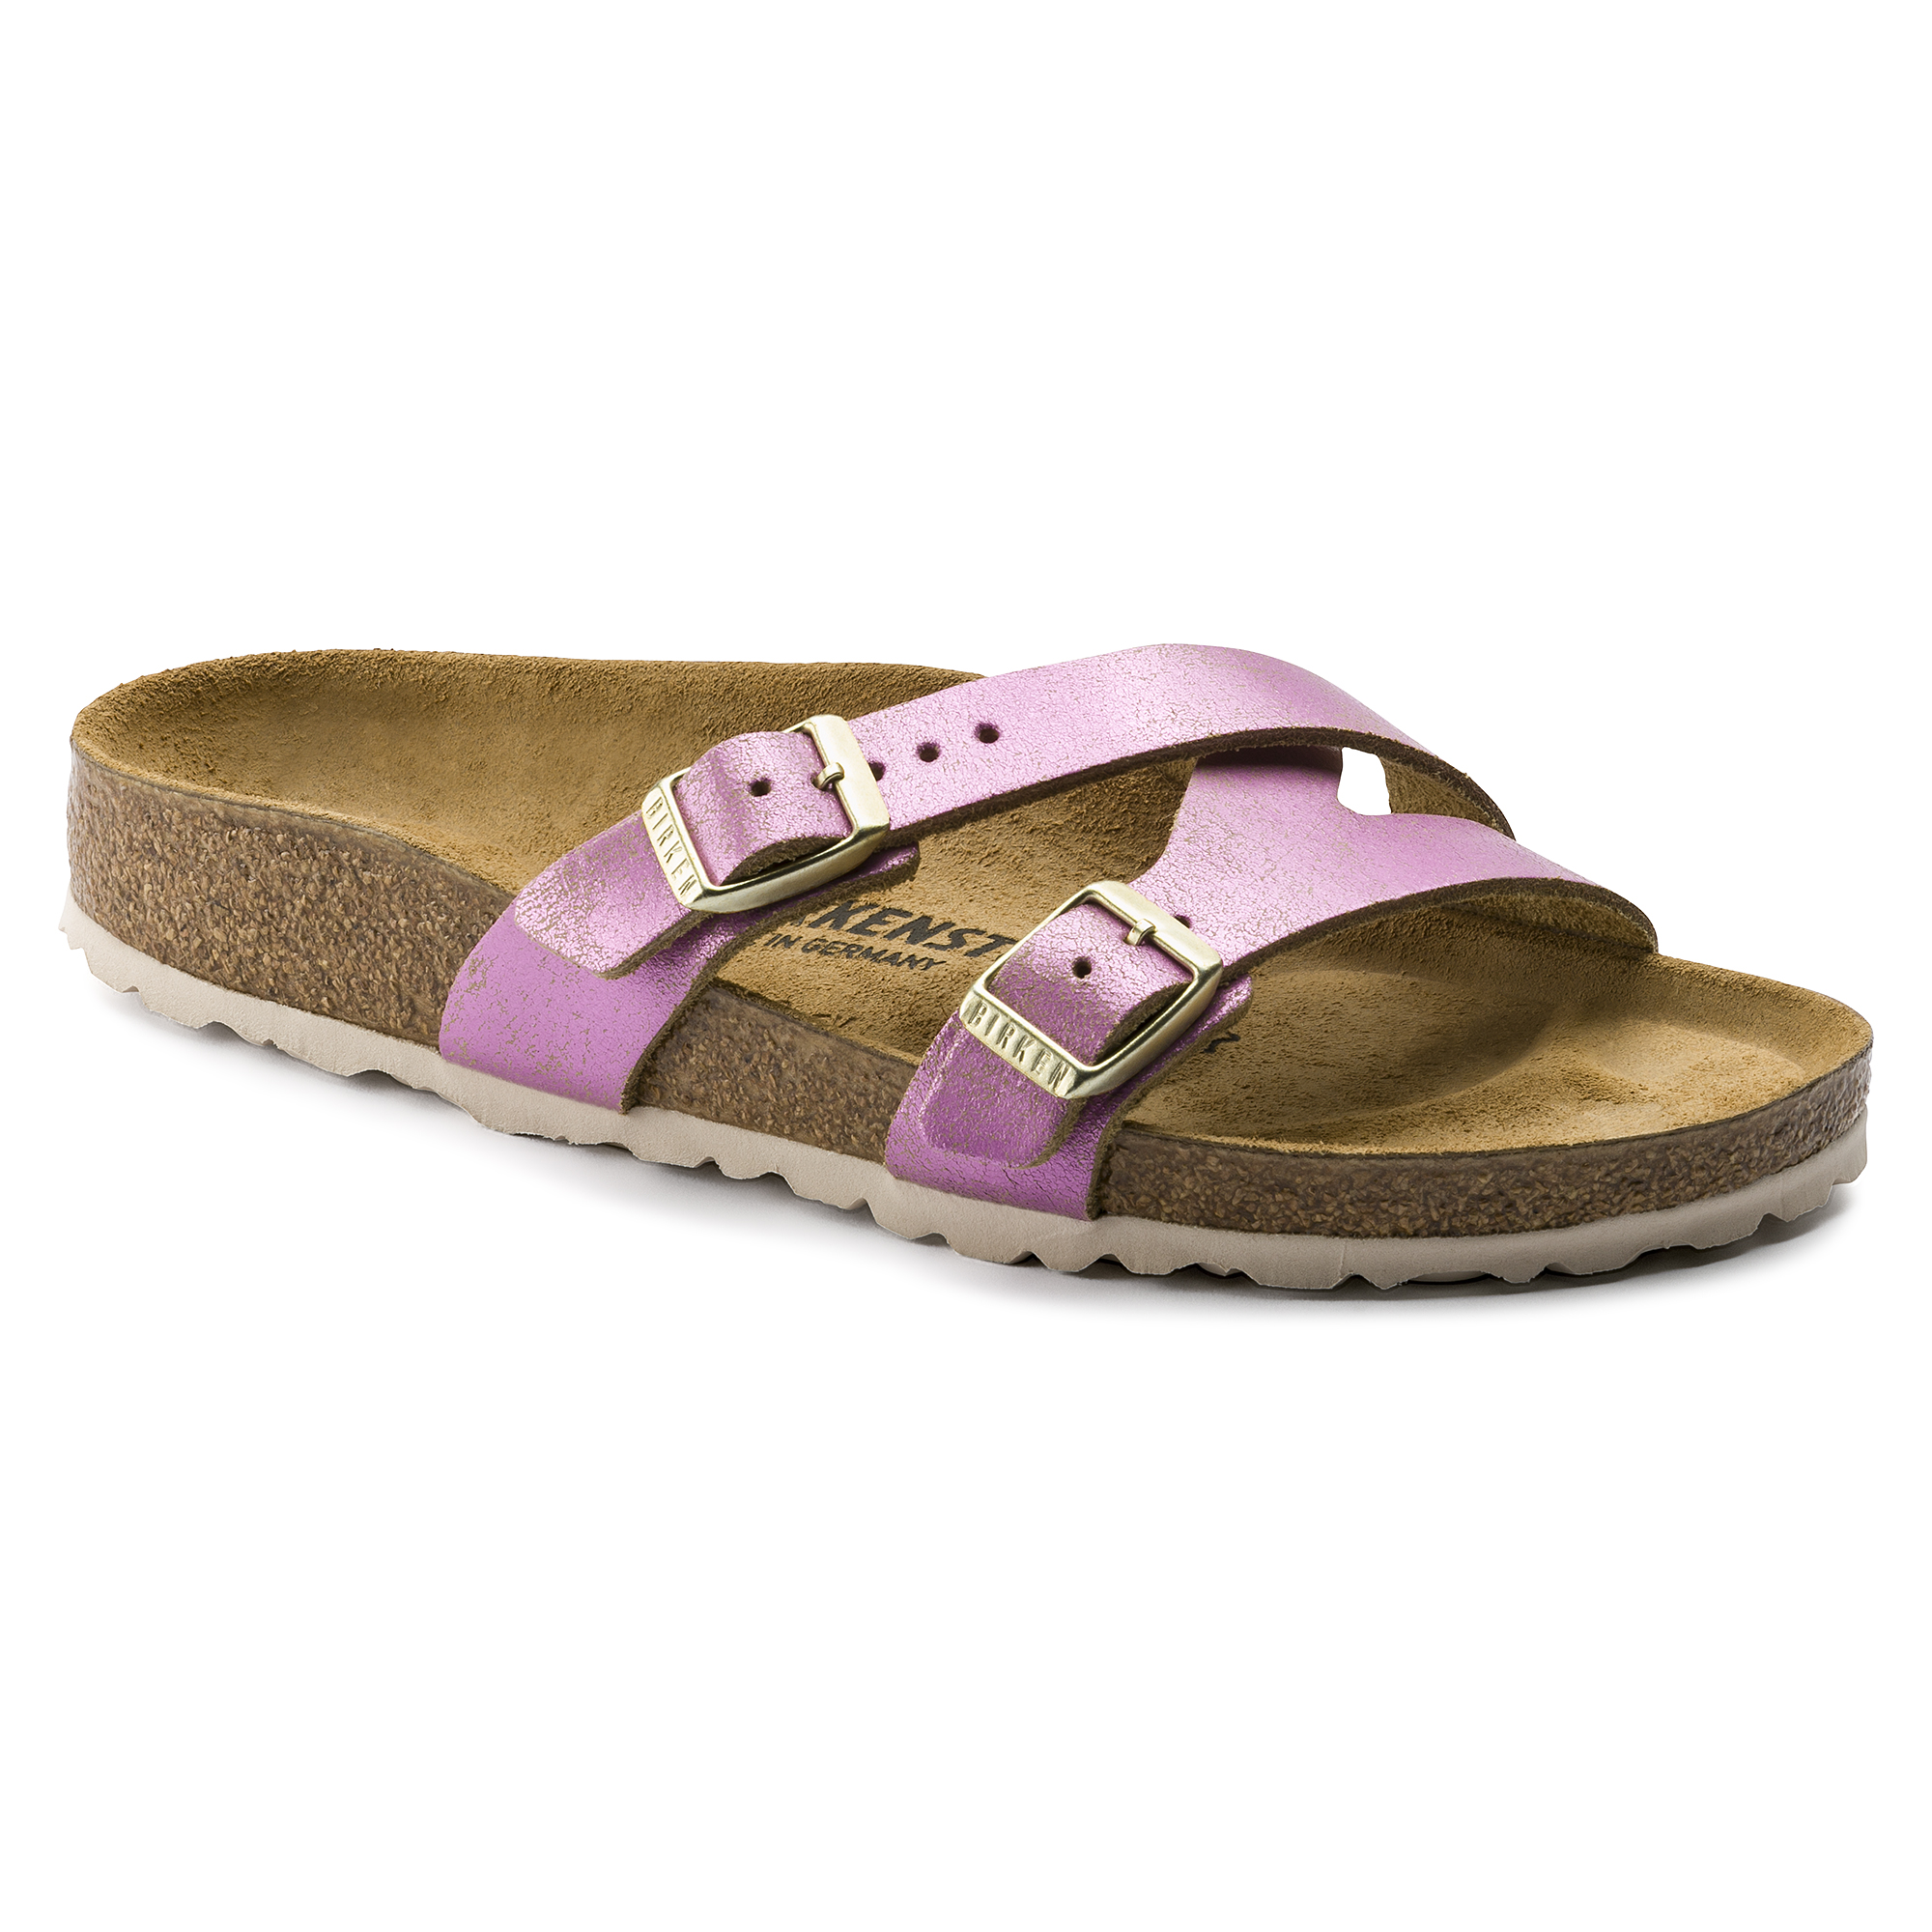 4f4ff2541ec8 Yao Suede Leather Washed Metallic Pink ...